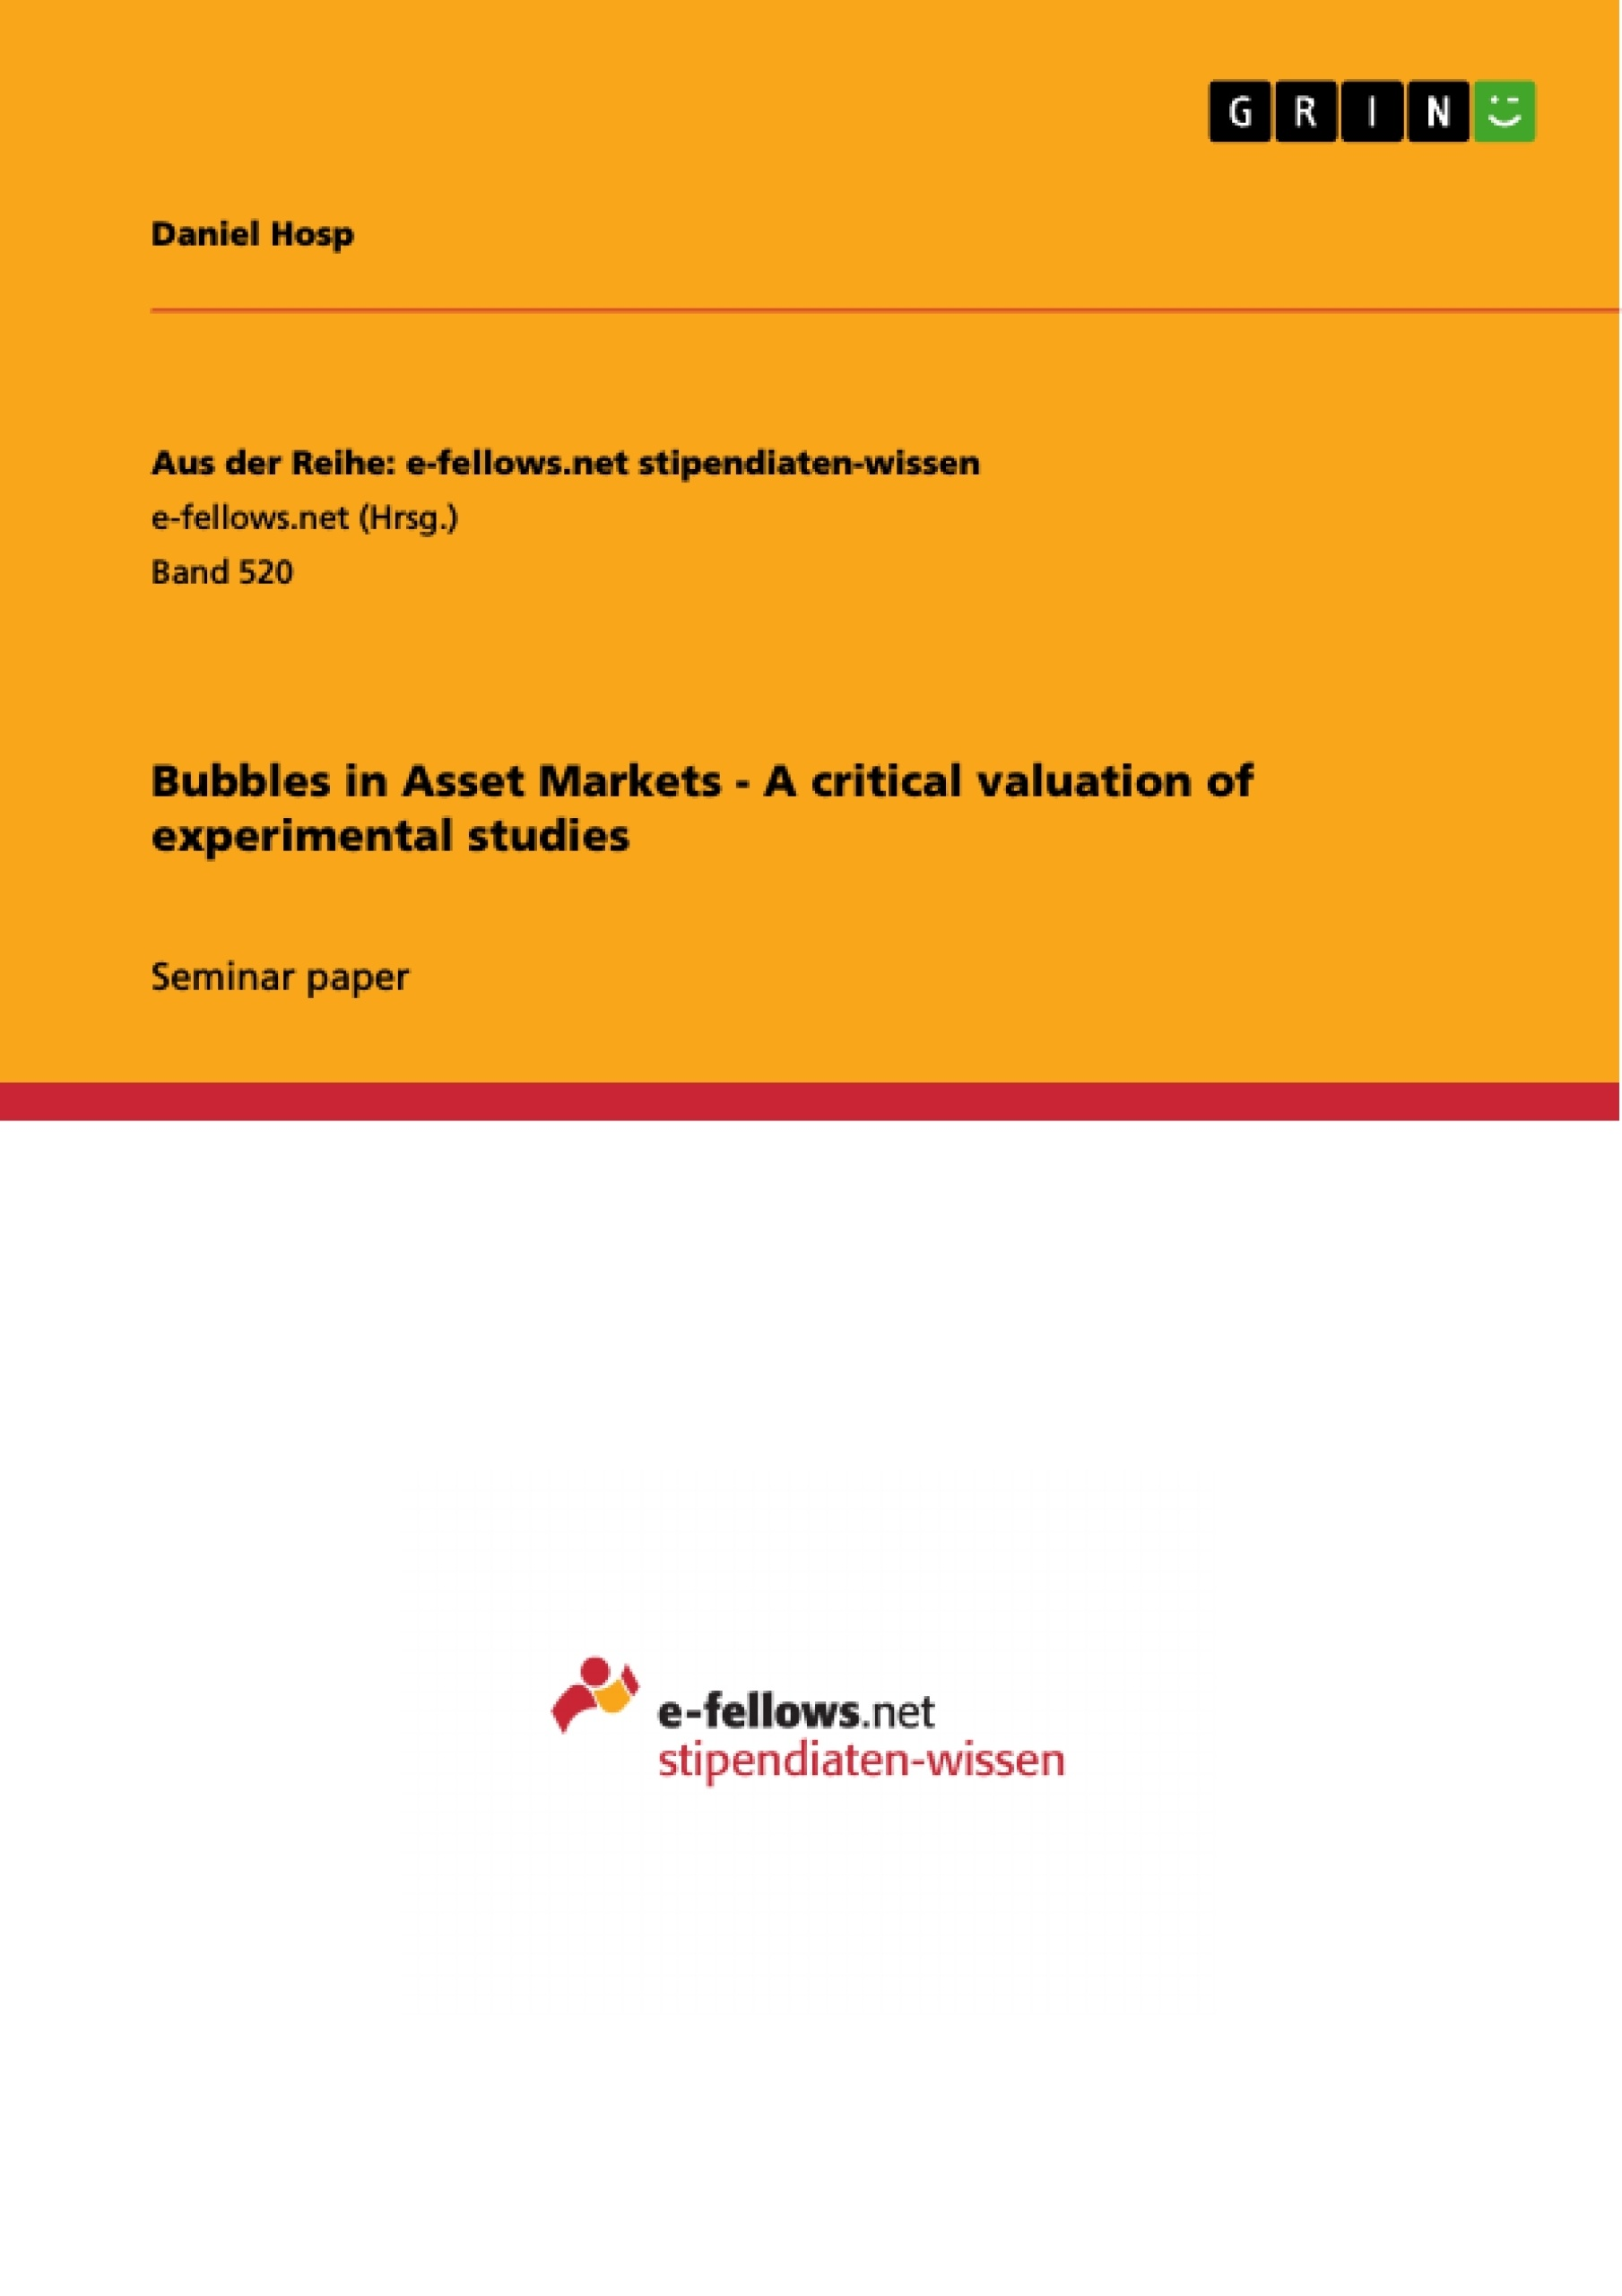 Title: Bubbles in Asset Markets - A critical valuation of experimental studies